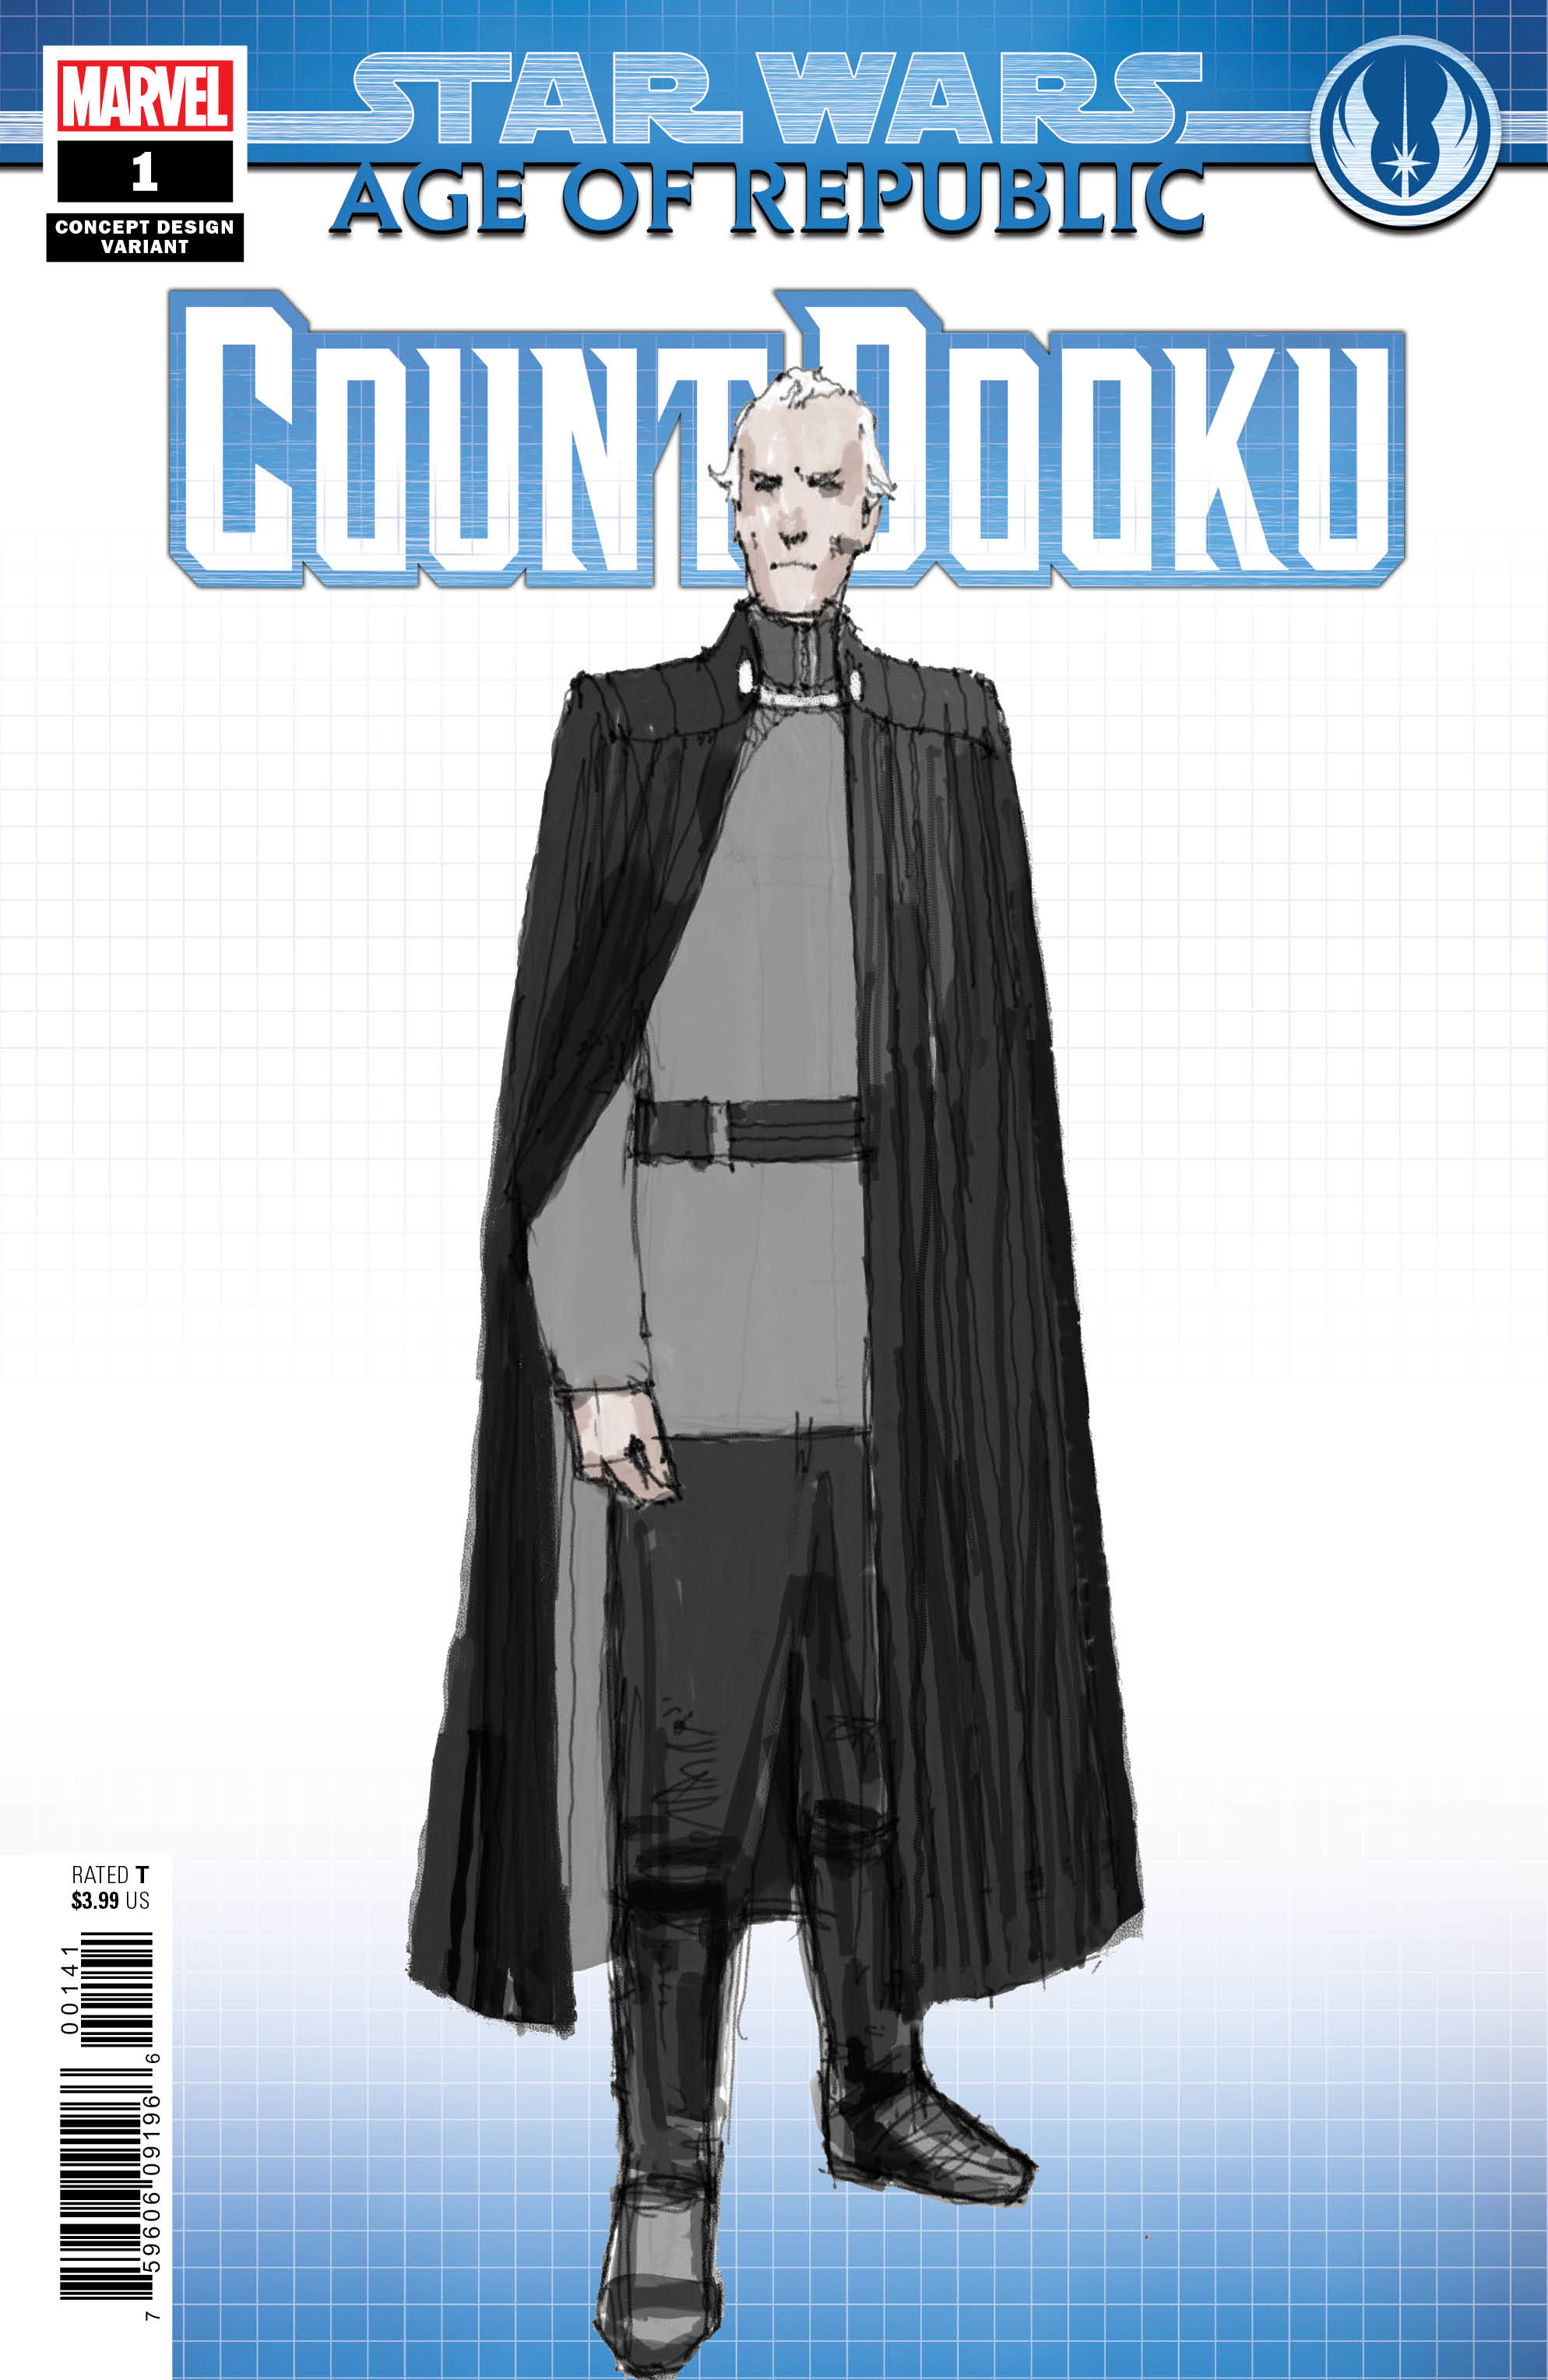 Age of Republic: Count Dooku #1 (Dermot Power Concept Design Variant Cover) (13.02.2019)